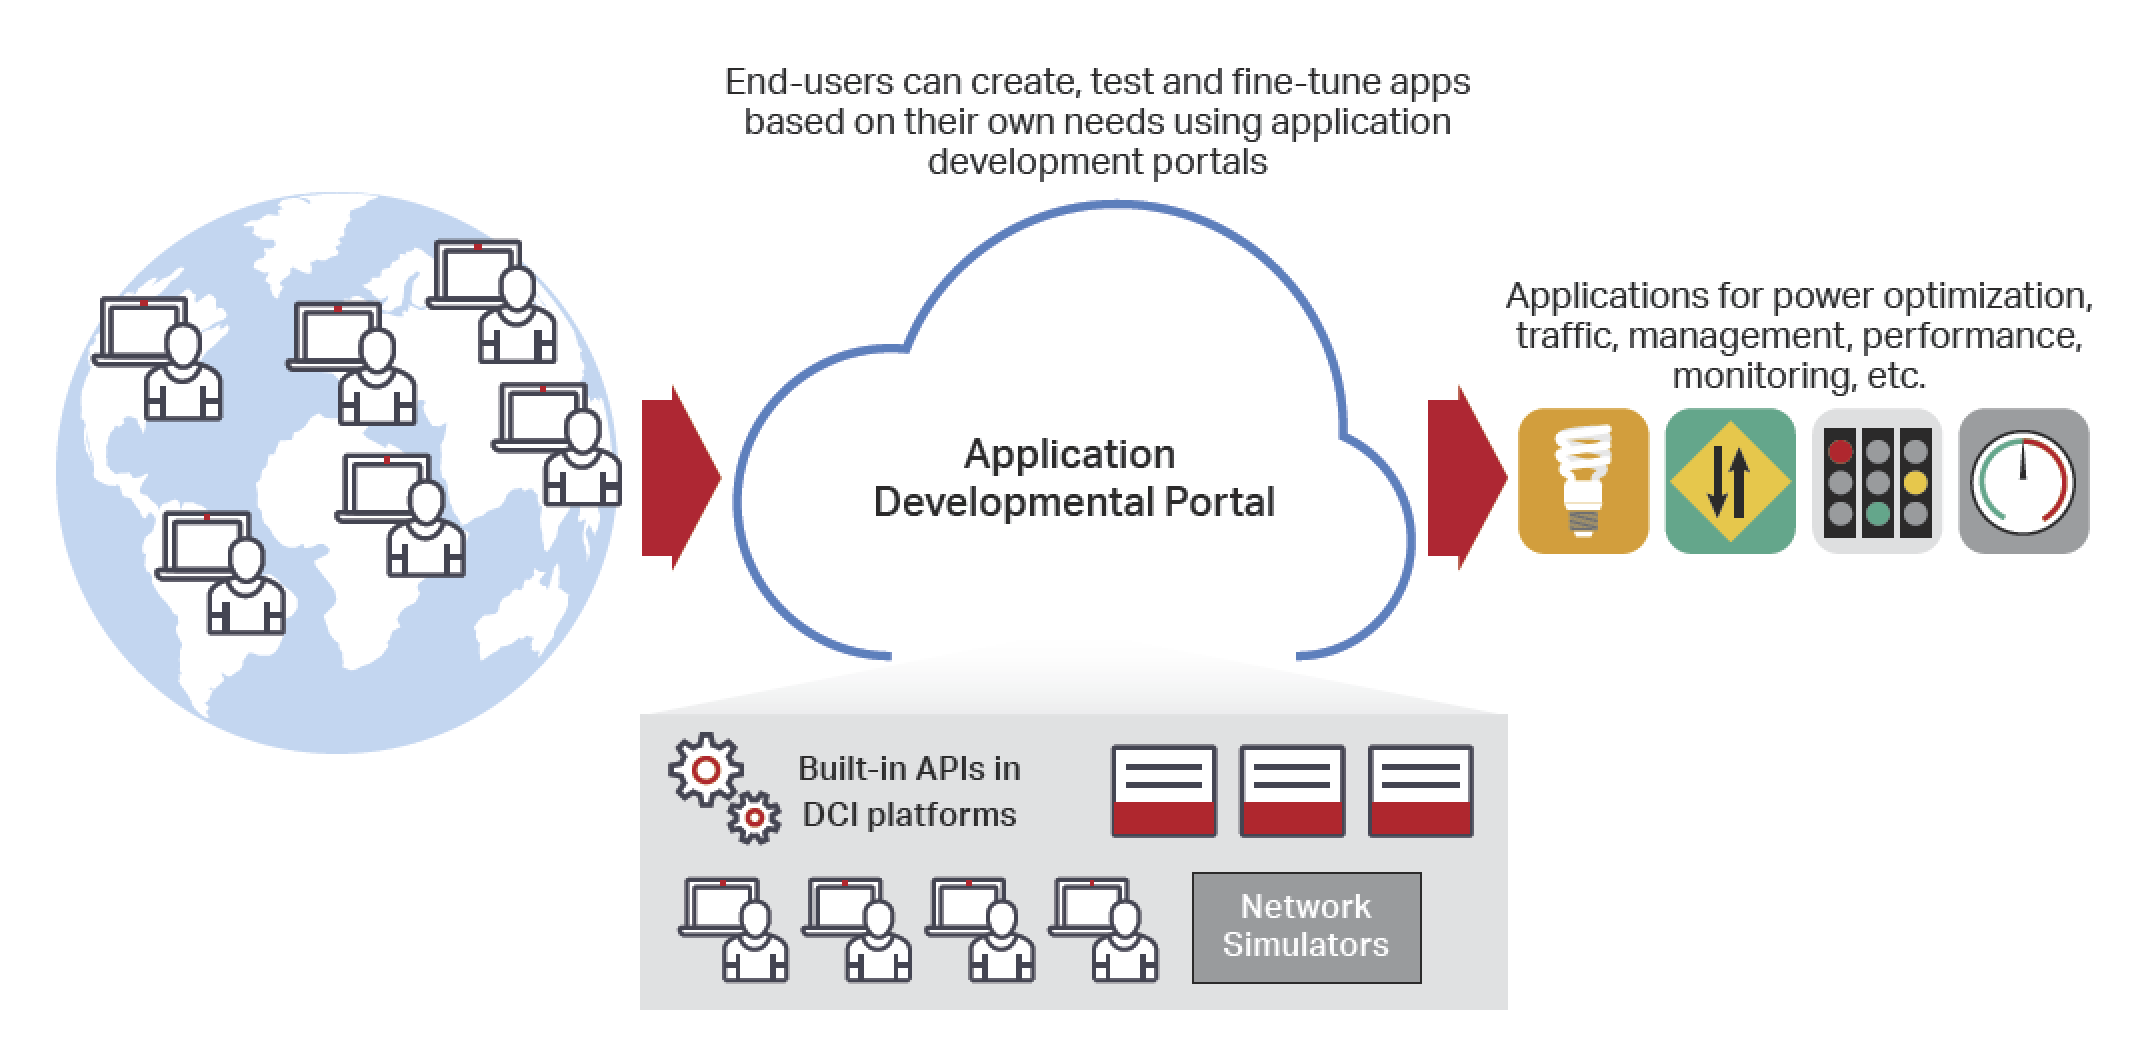 Figure 9. Application development portal for DCI